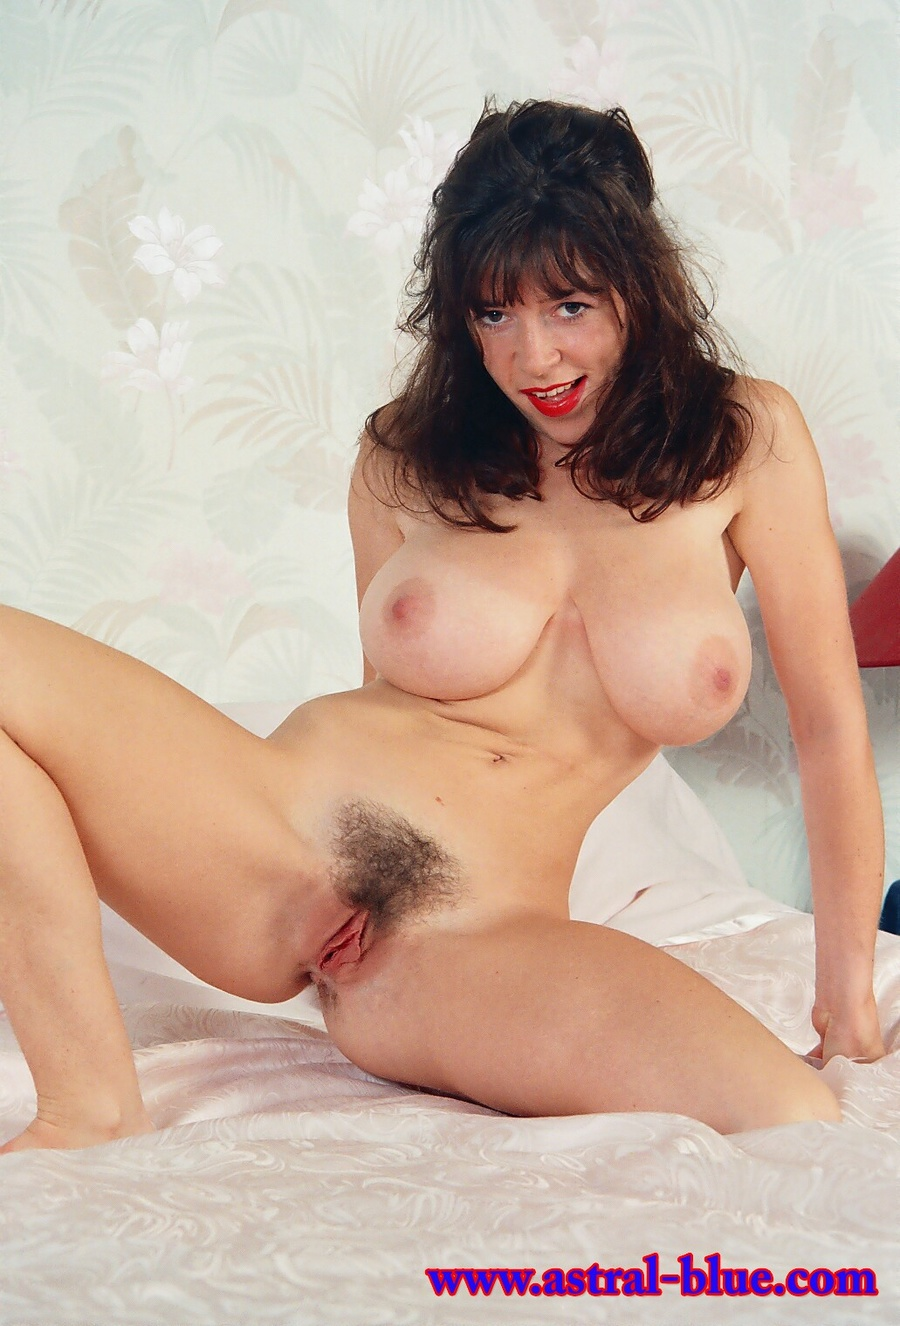 Sexpornagirl naked galleries